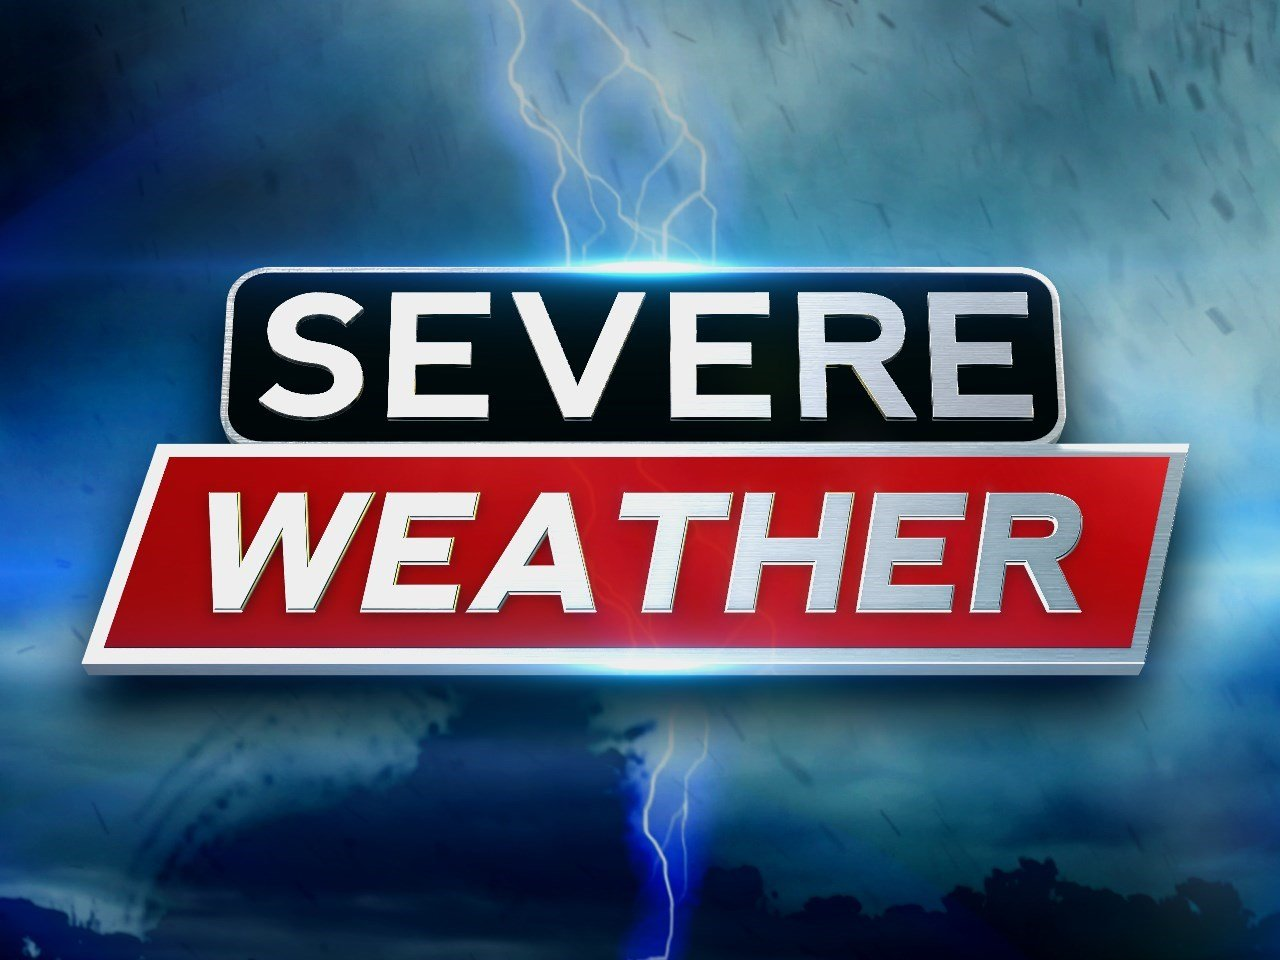 Sever weather / MGN Online